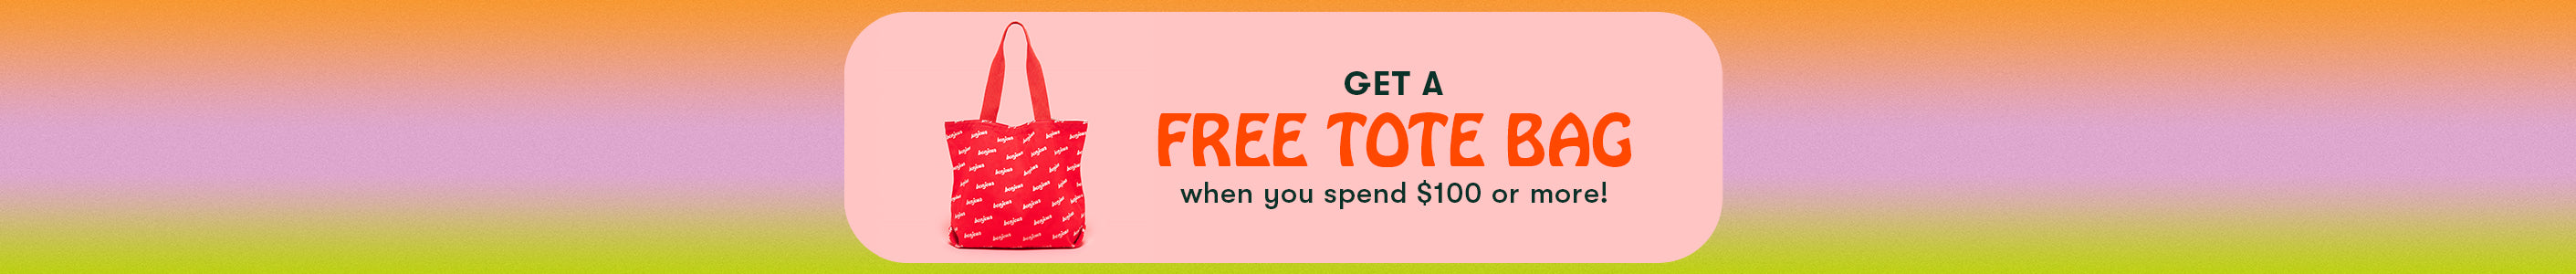 Get a free tote bag when you spend $100 or more...see details